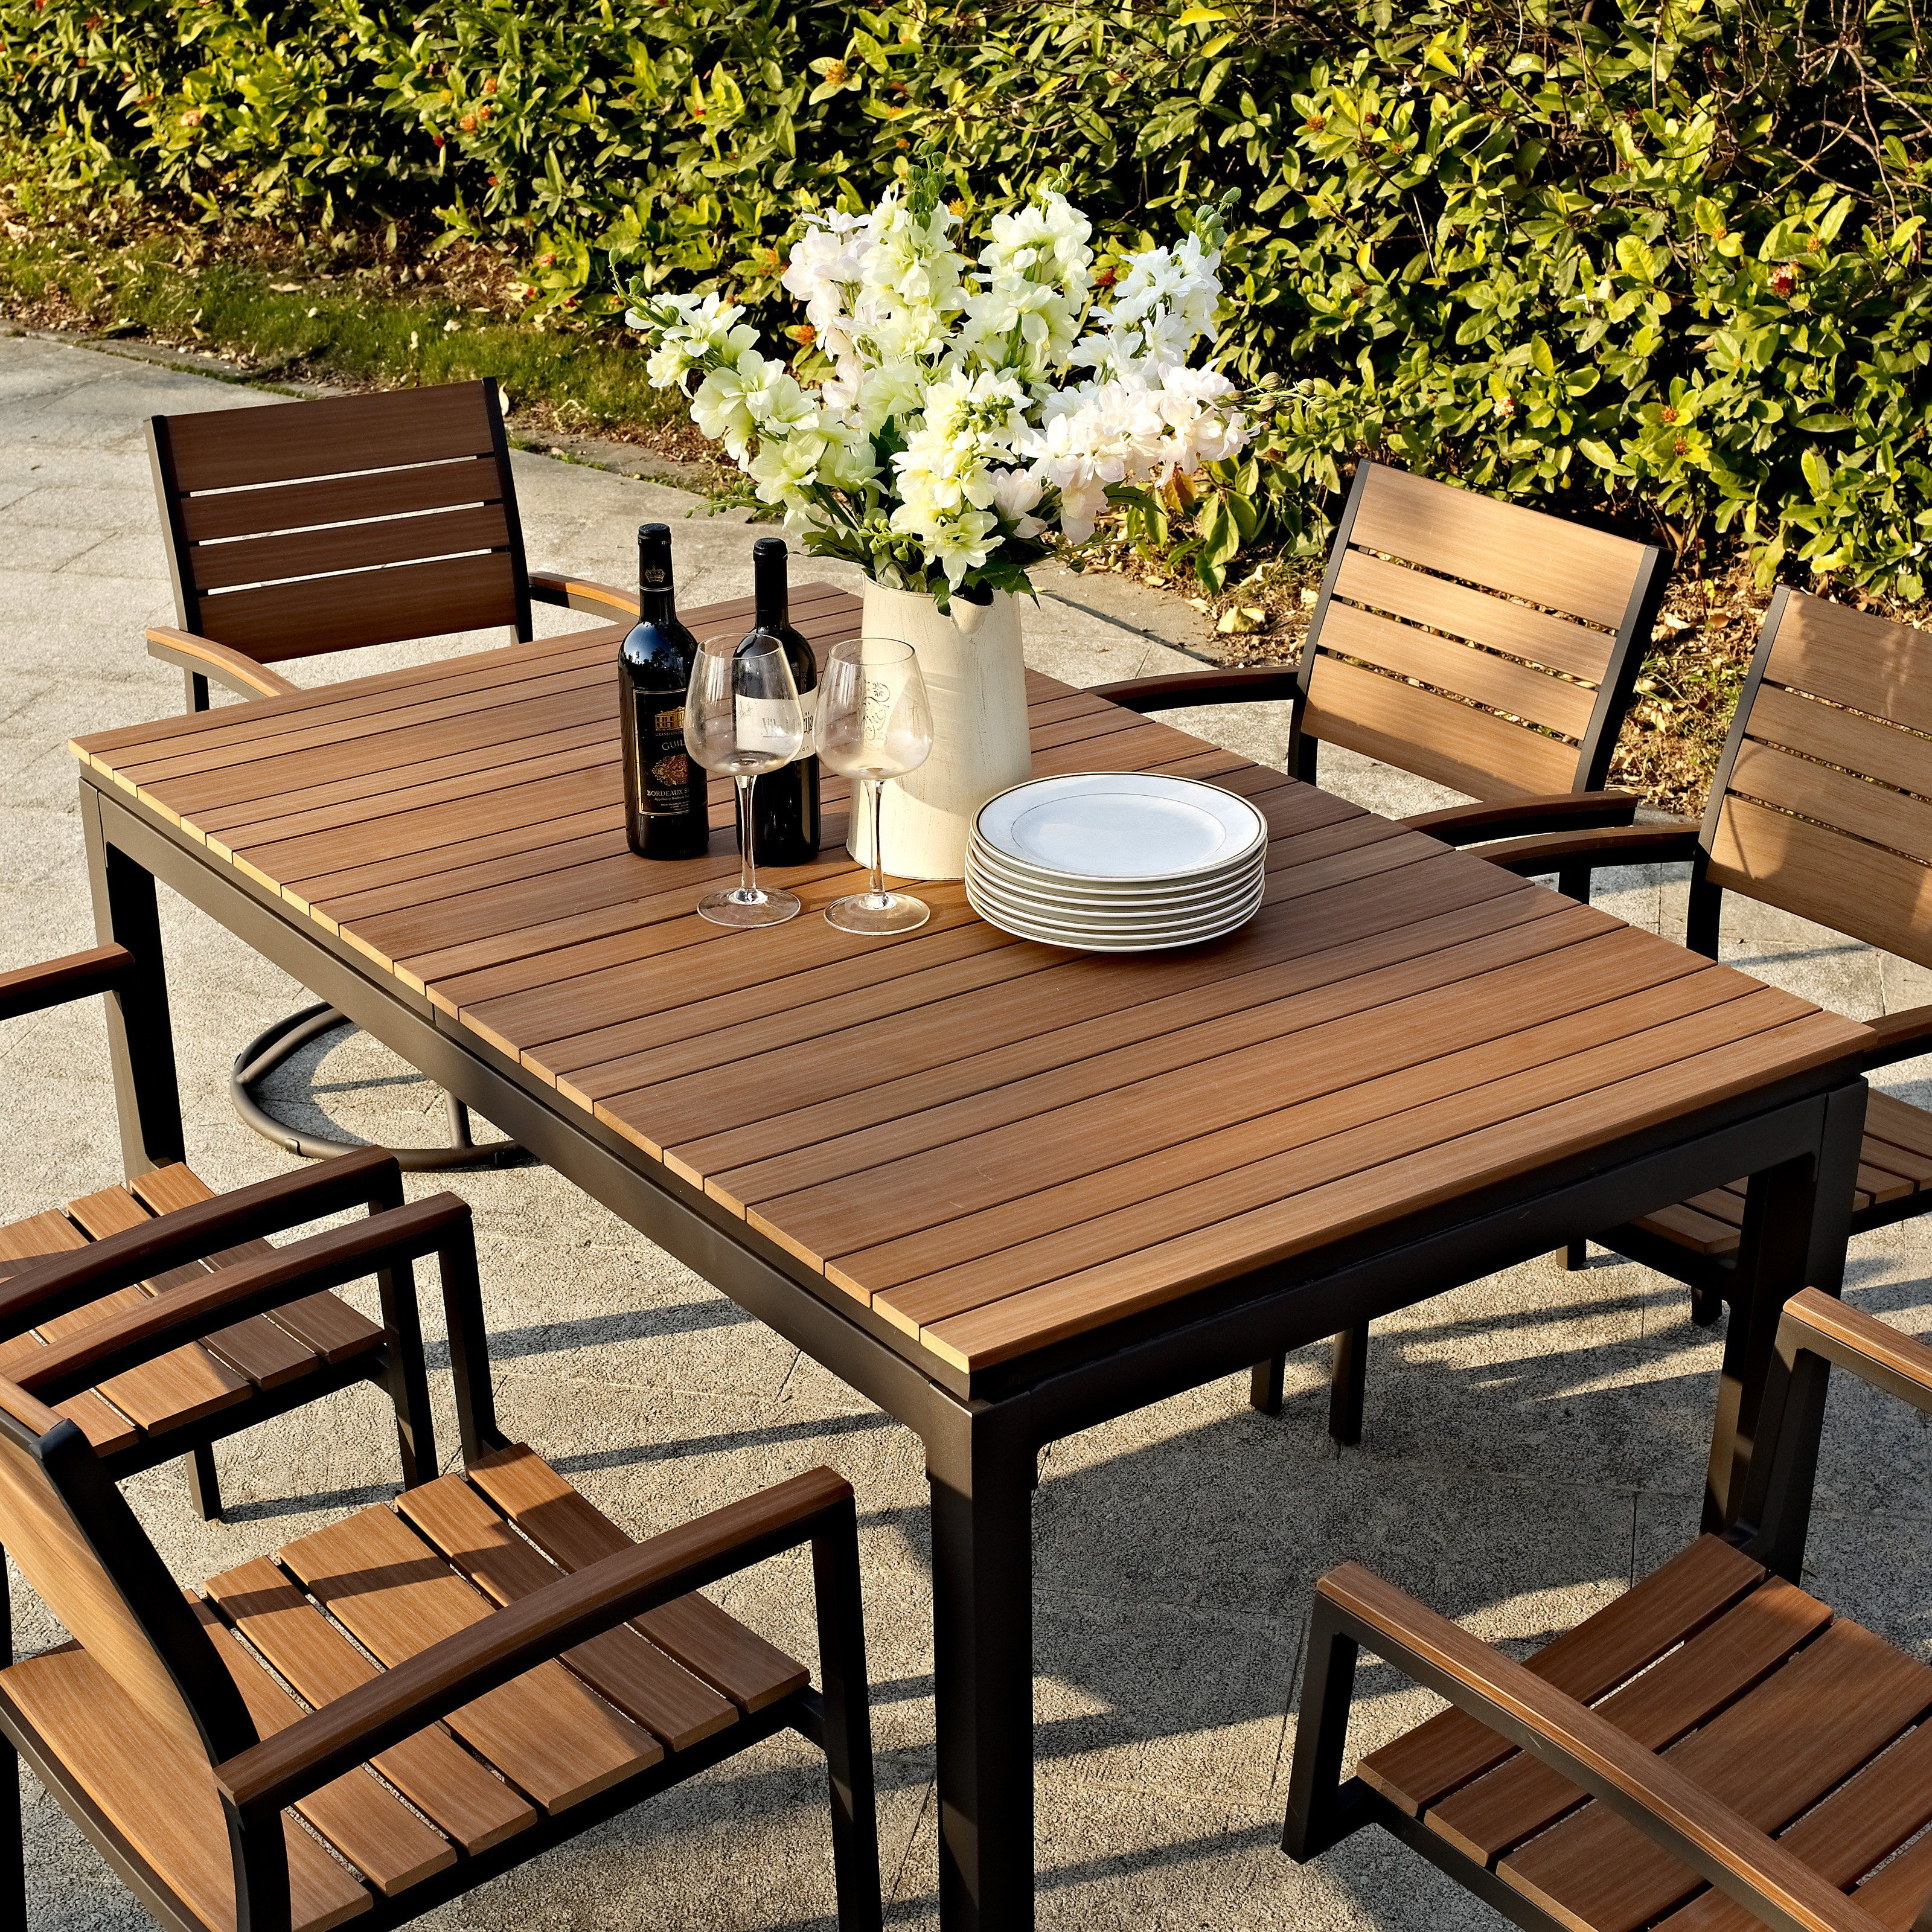 Extending The Joys Of Outdoor Living Archadeck Style: Have To Have It. Belham Living Carmona Faux Wood Extension